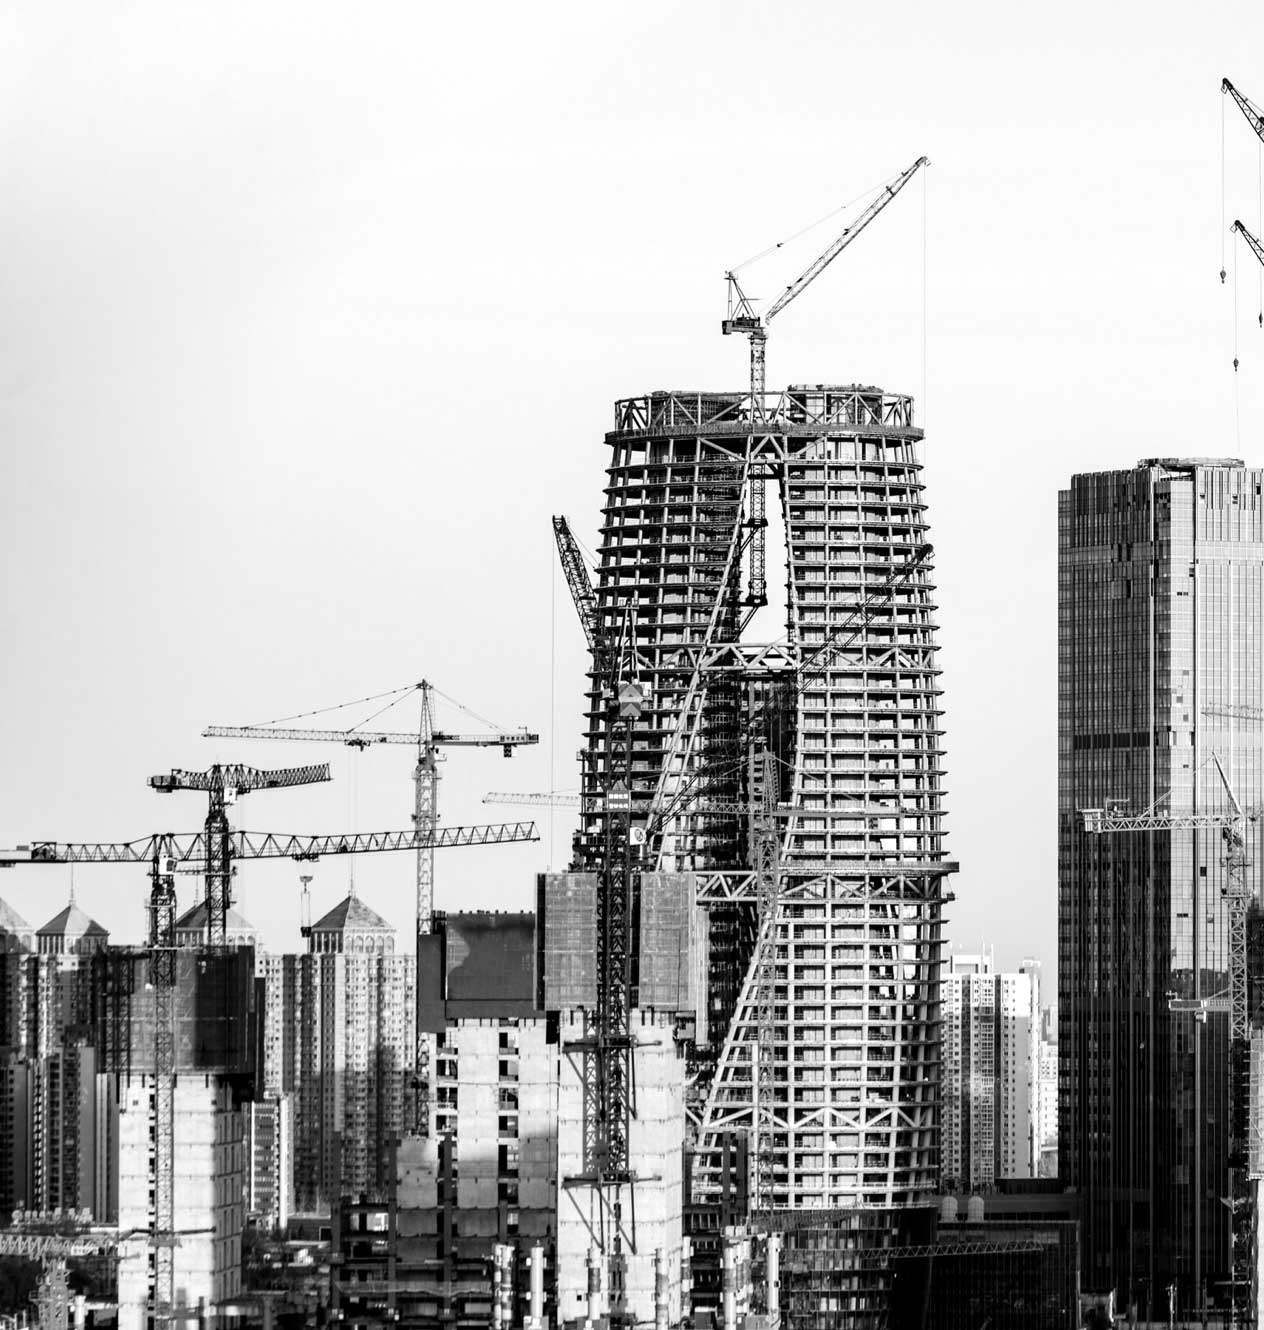 cranes and buildings under construction